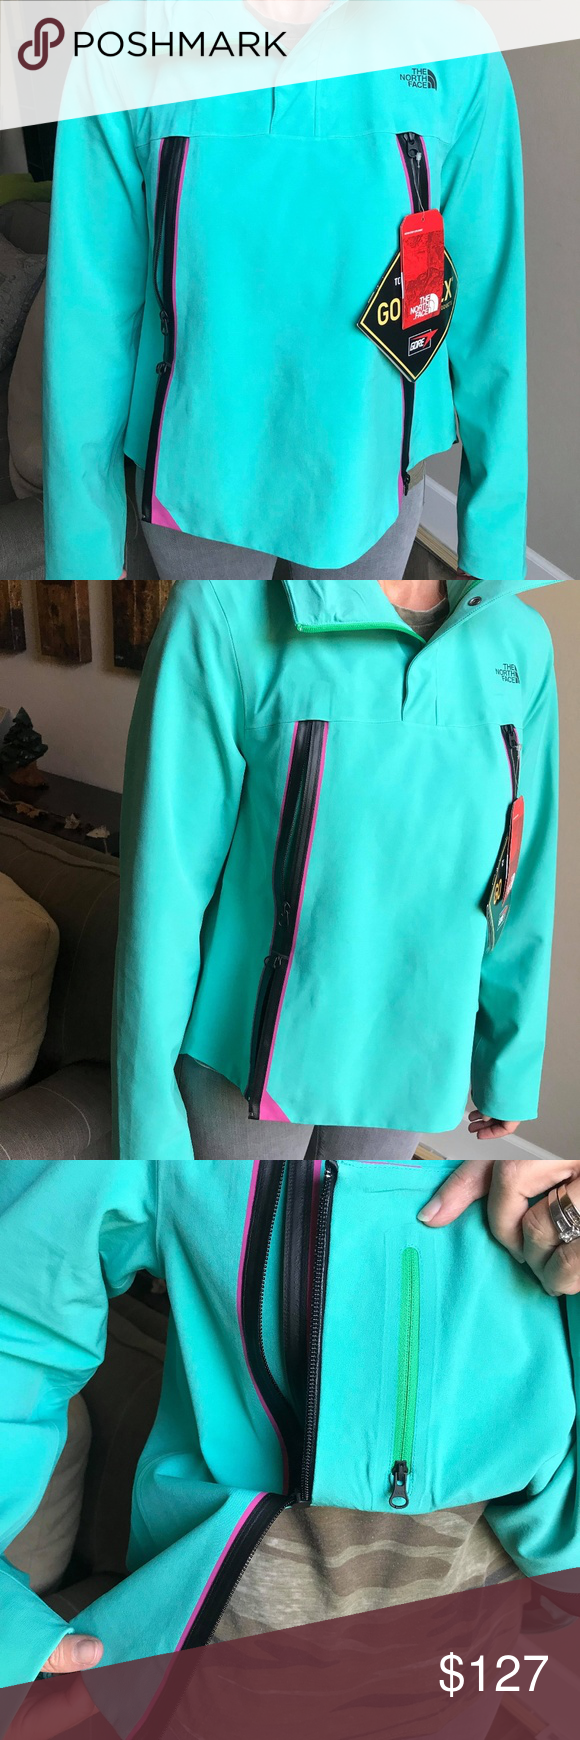 61c38cd69 Spotted while shopping on Poshmark: The-North-Face-Women-Apex-Flex ...